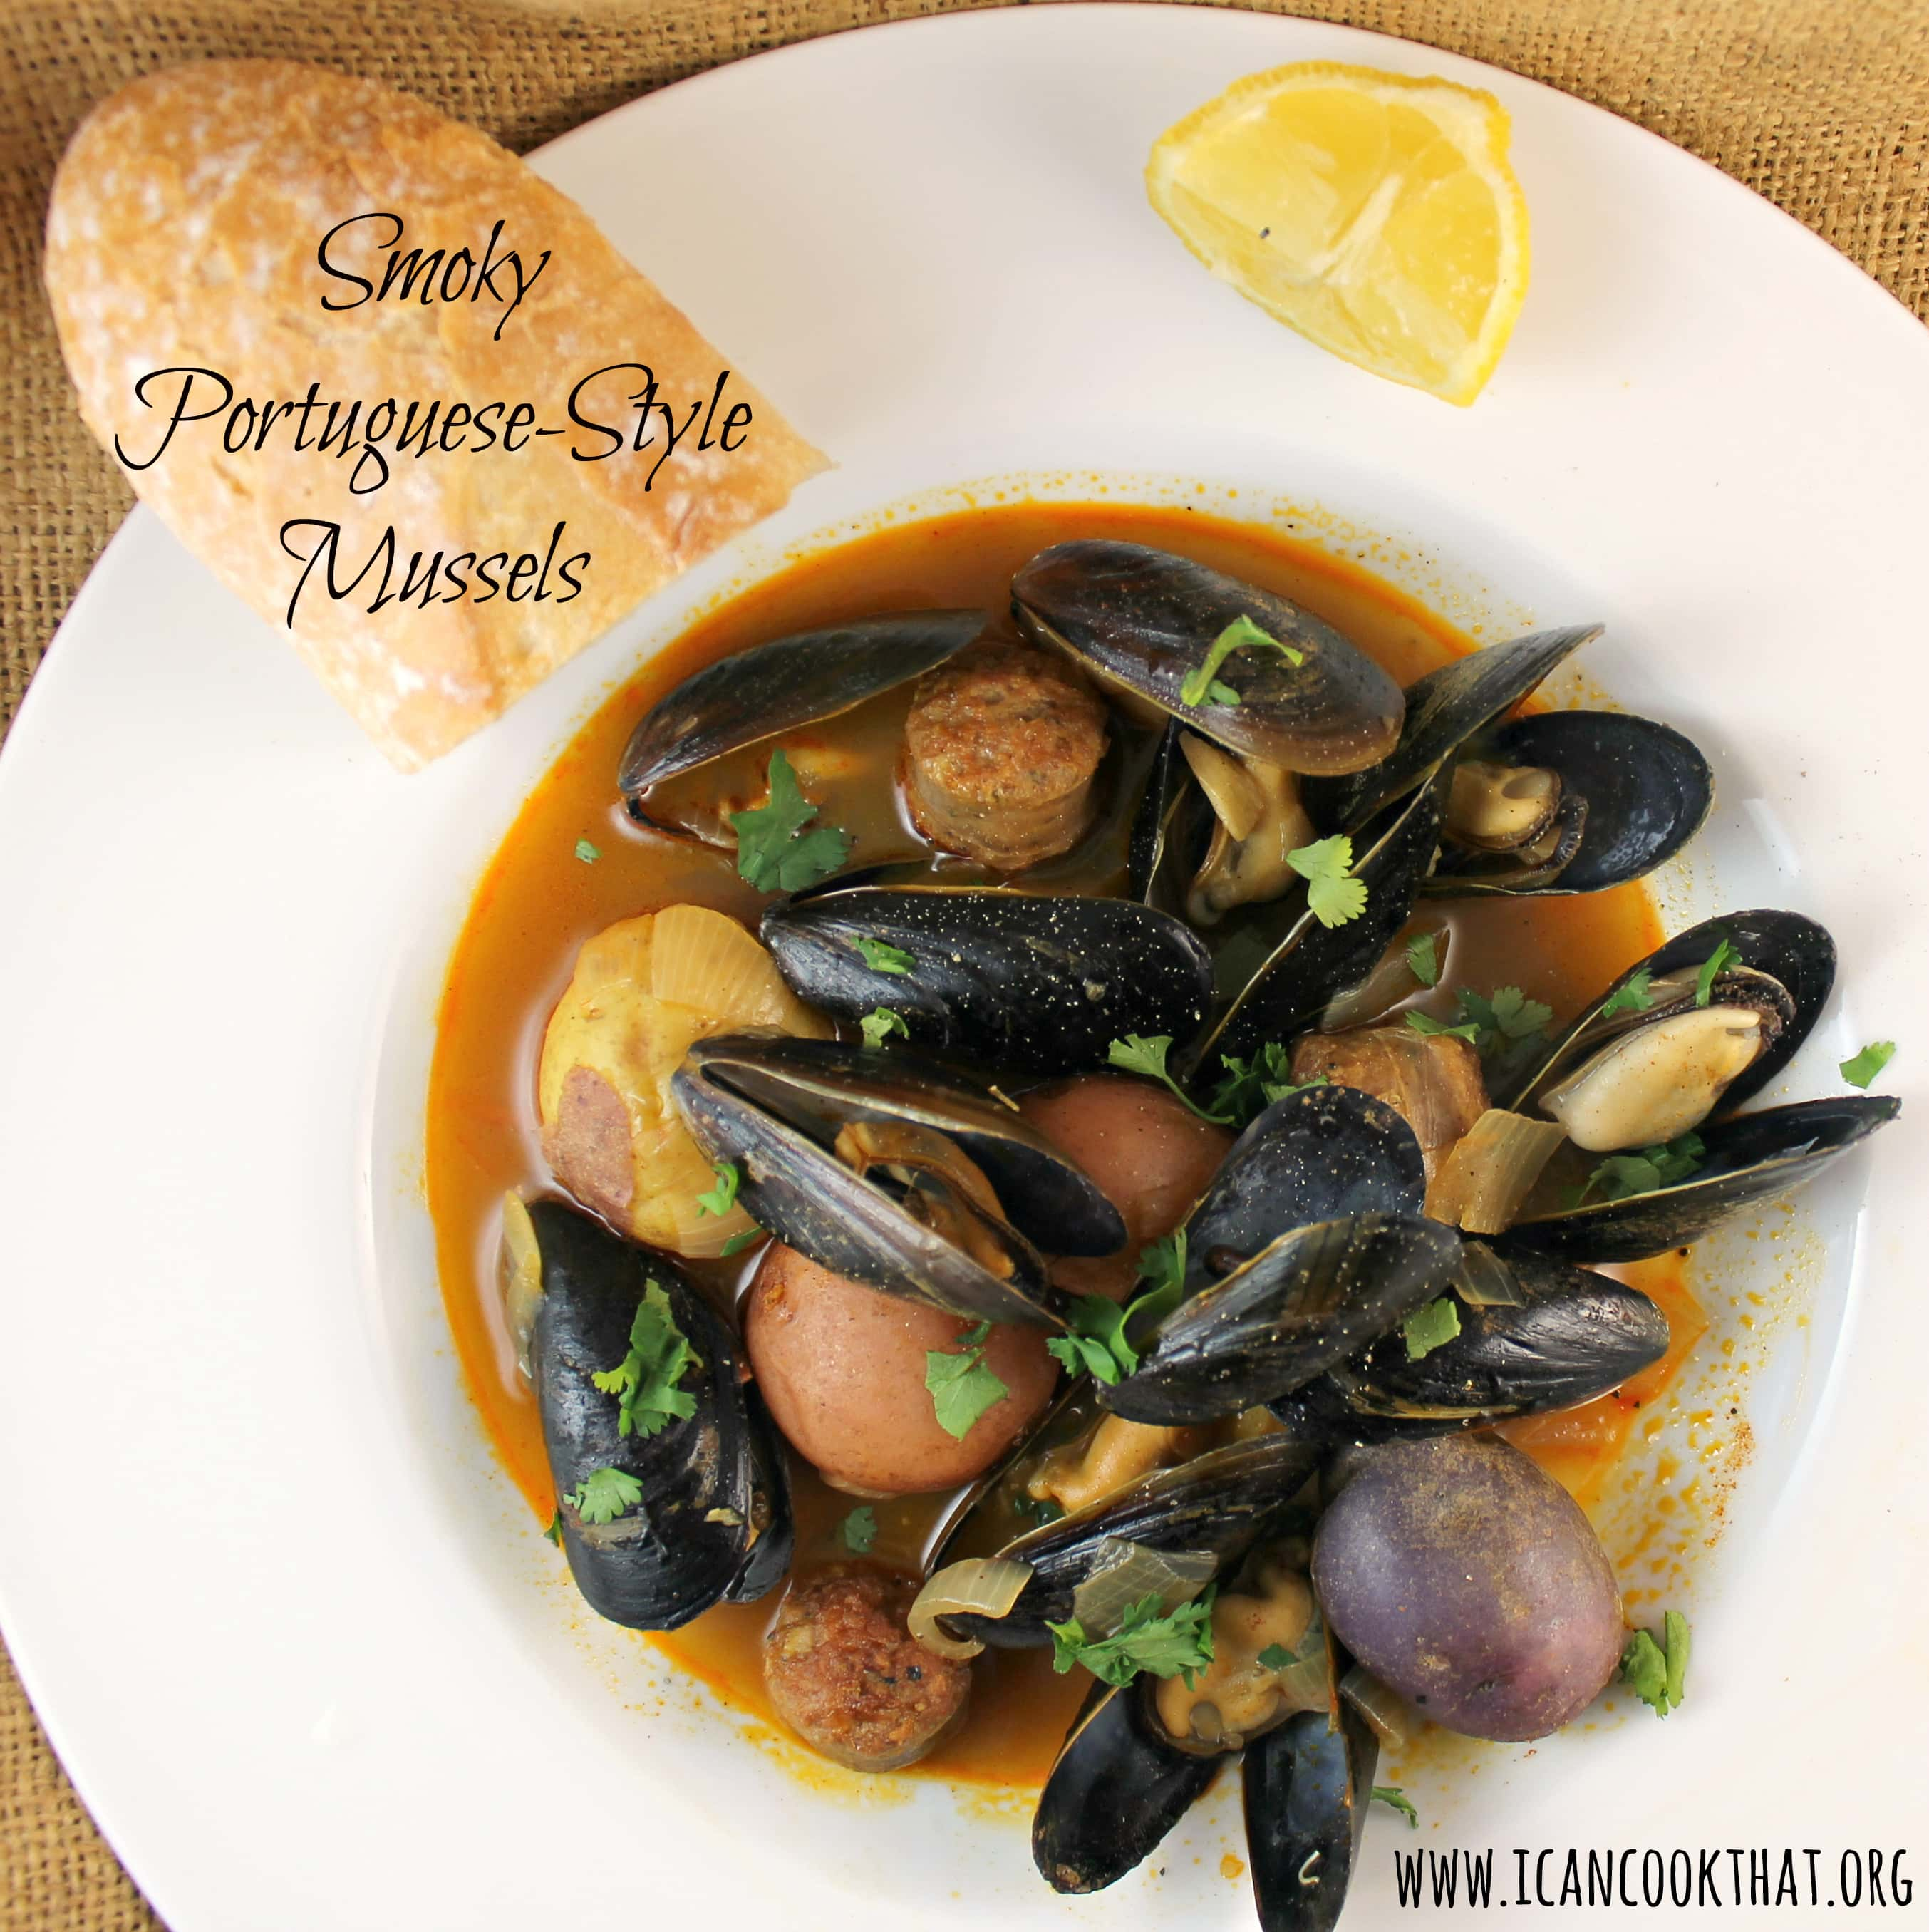 Smoky Portuguese-Style Mussels